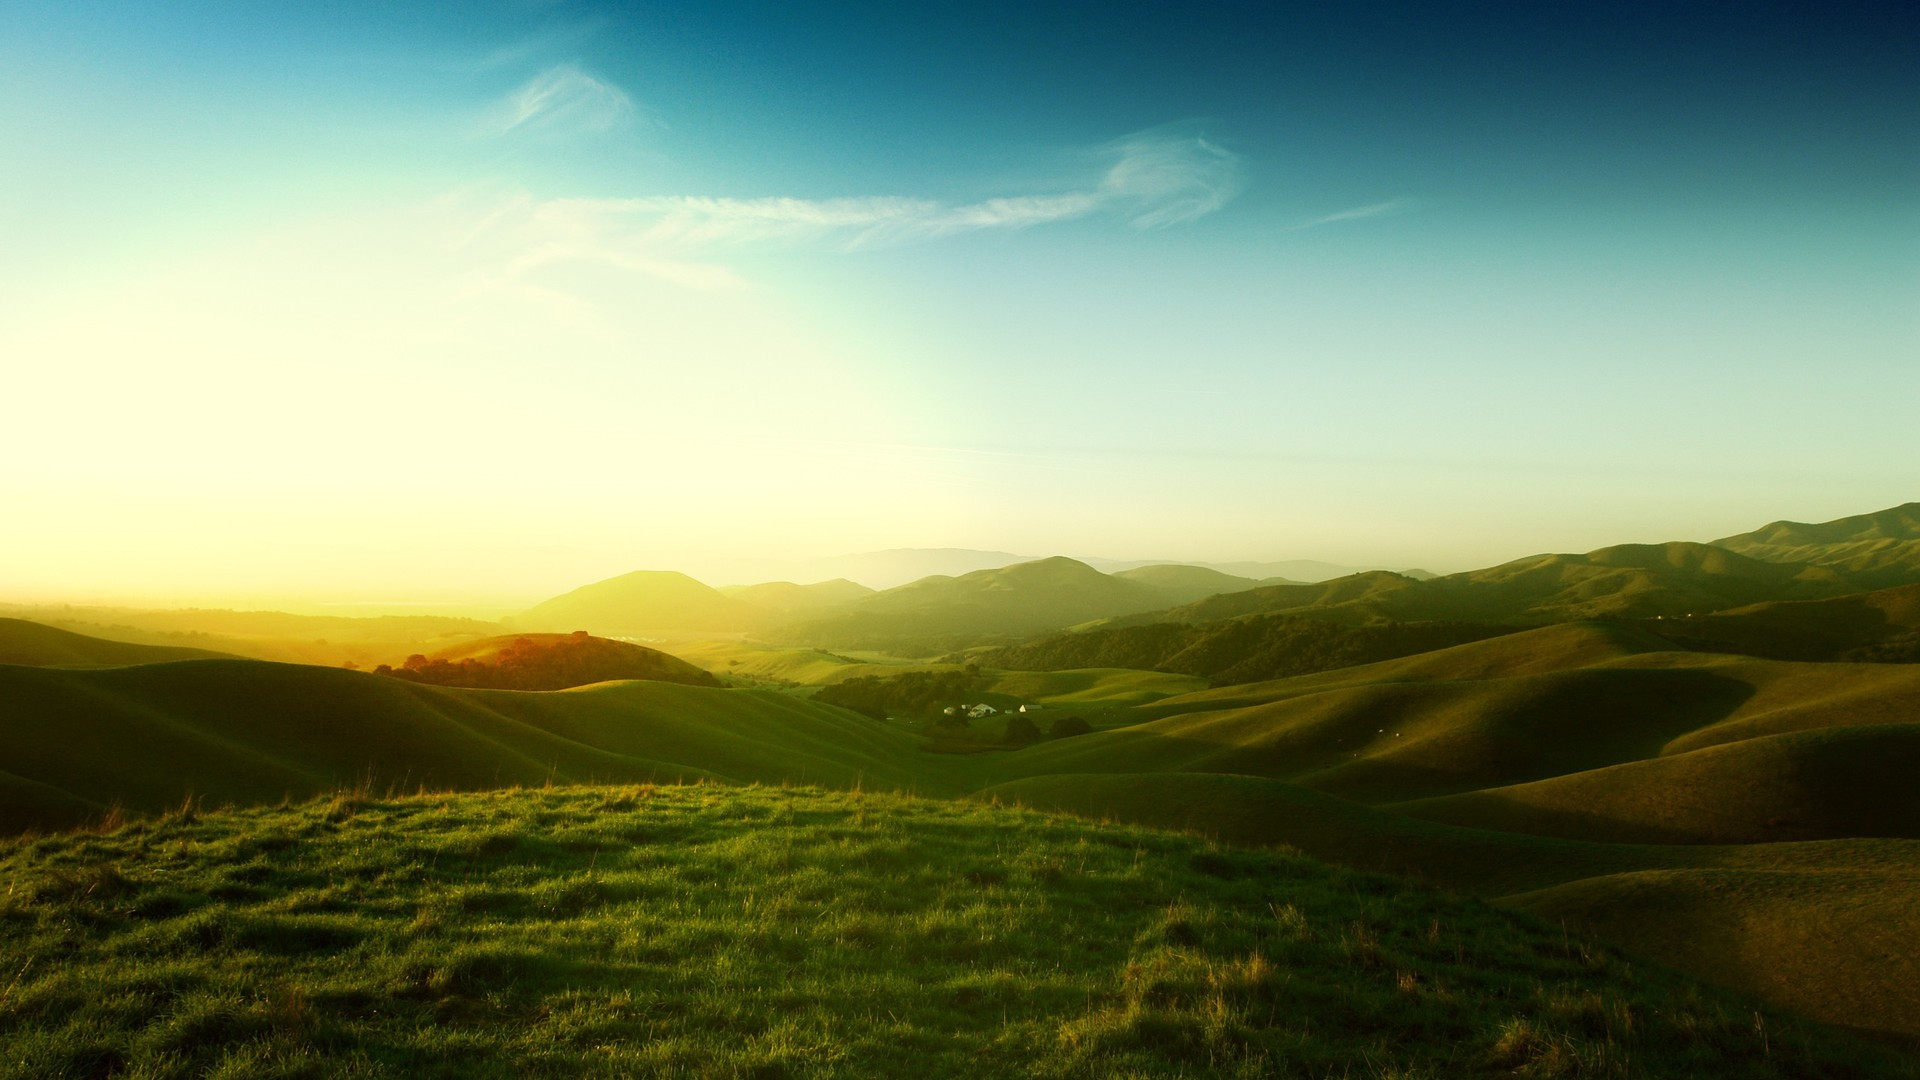 ... green hills 1920x1080 wallpaper ...